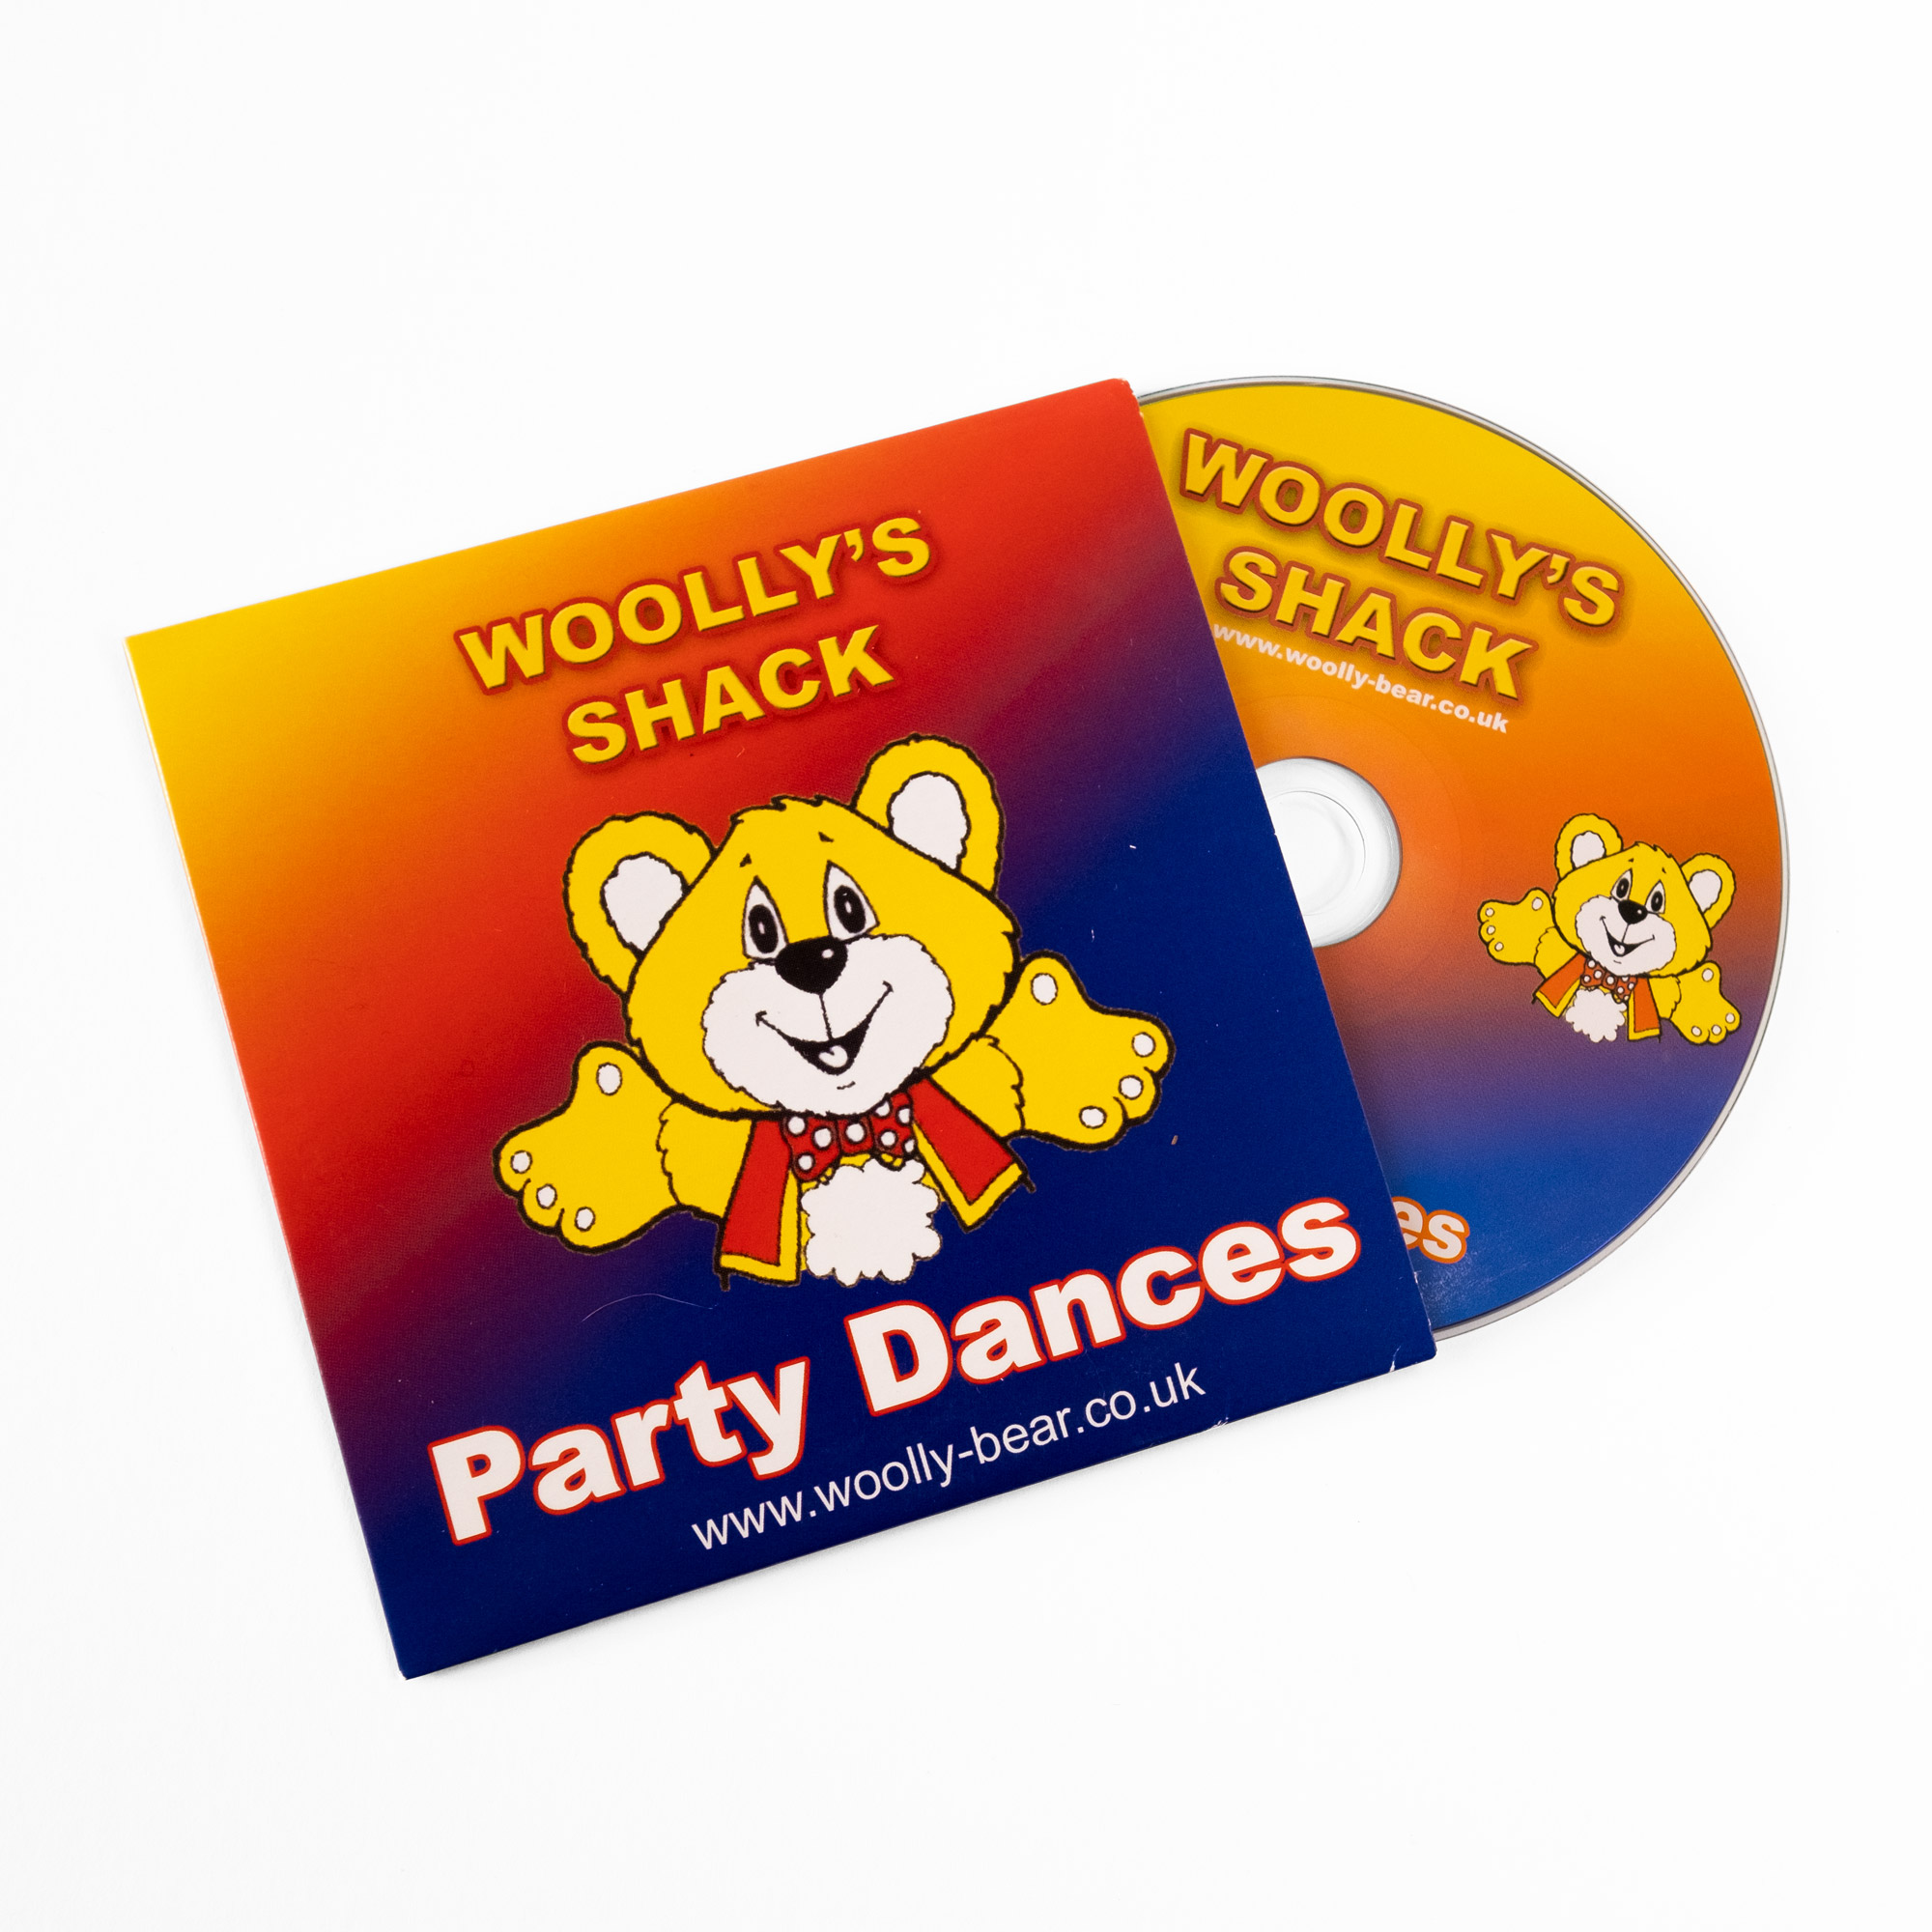 Woolly's Party Dances CD